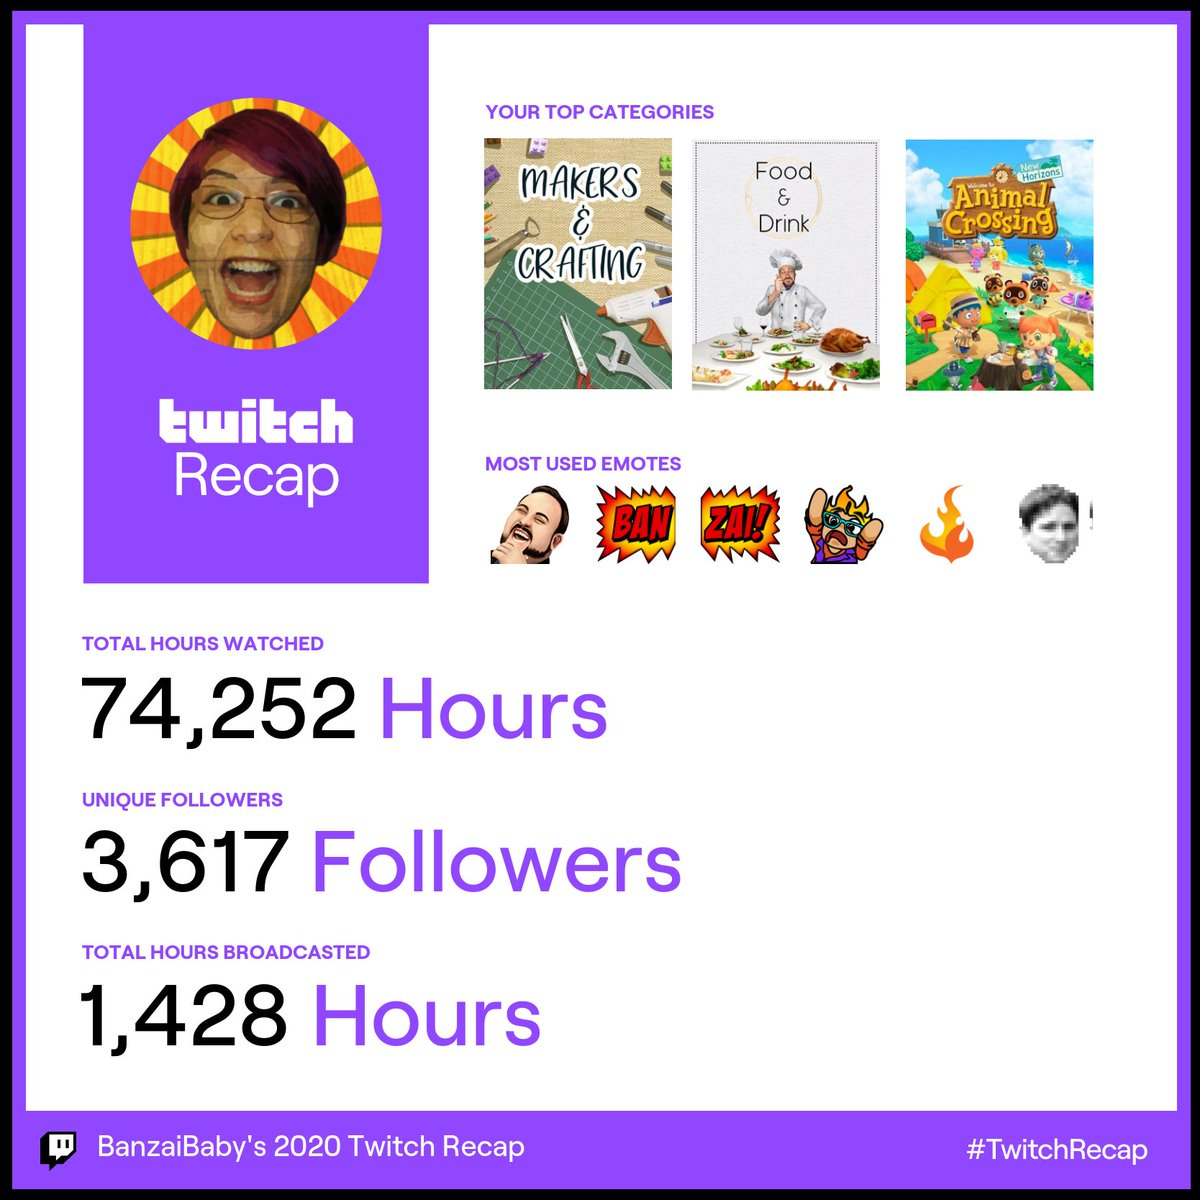 Oh hey these stats are half bad! Thanks for the #TwitchRecap @Twitch